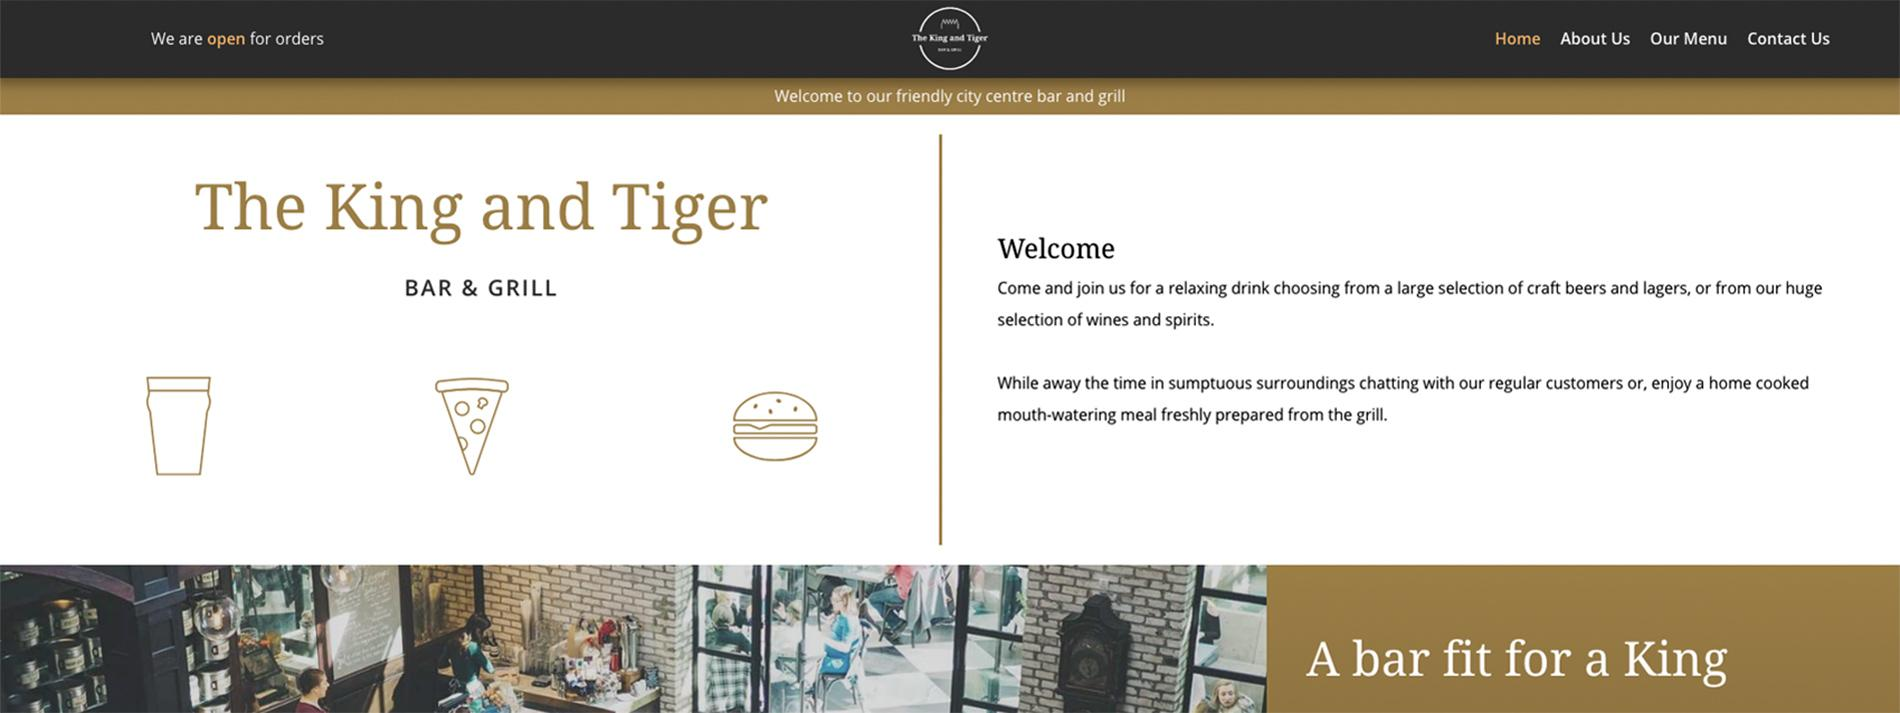 wp-banner-king-tiger-page.jpg.webp